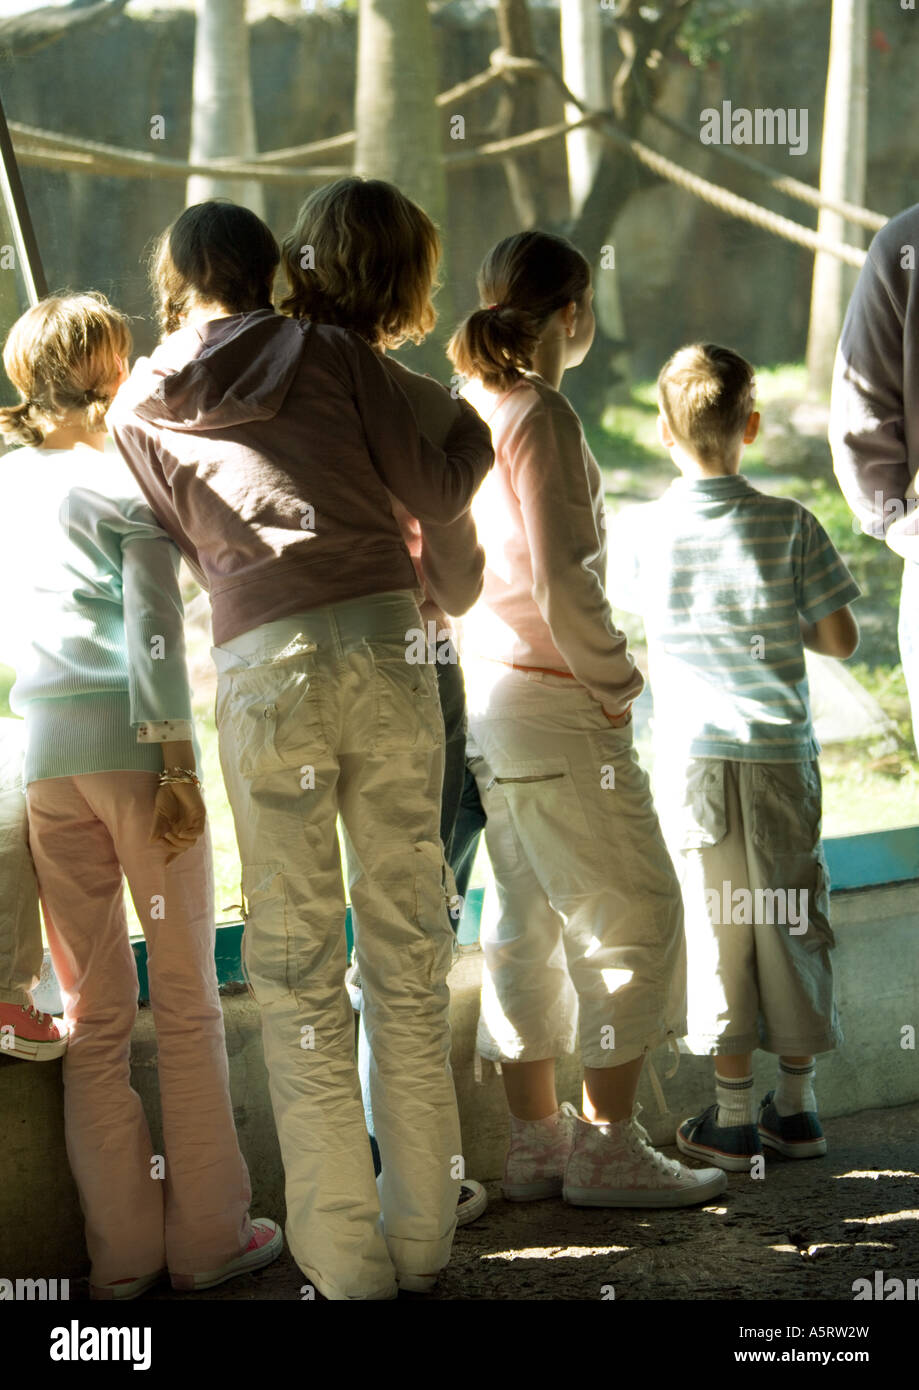 Group of children in zoo - Stock Image